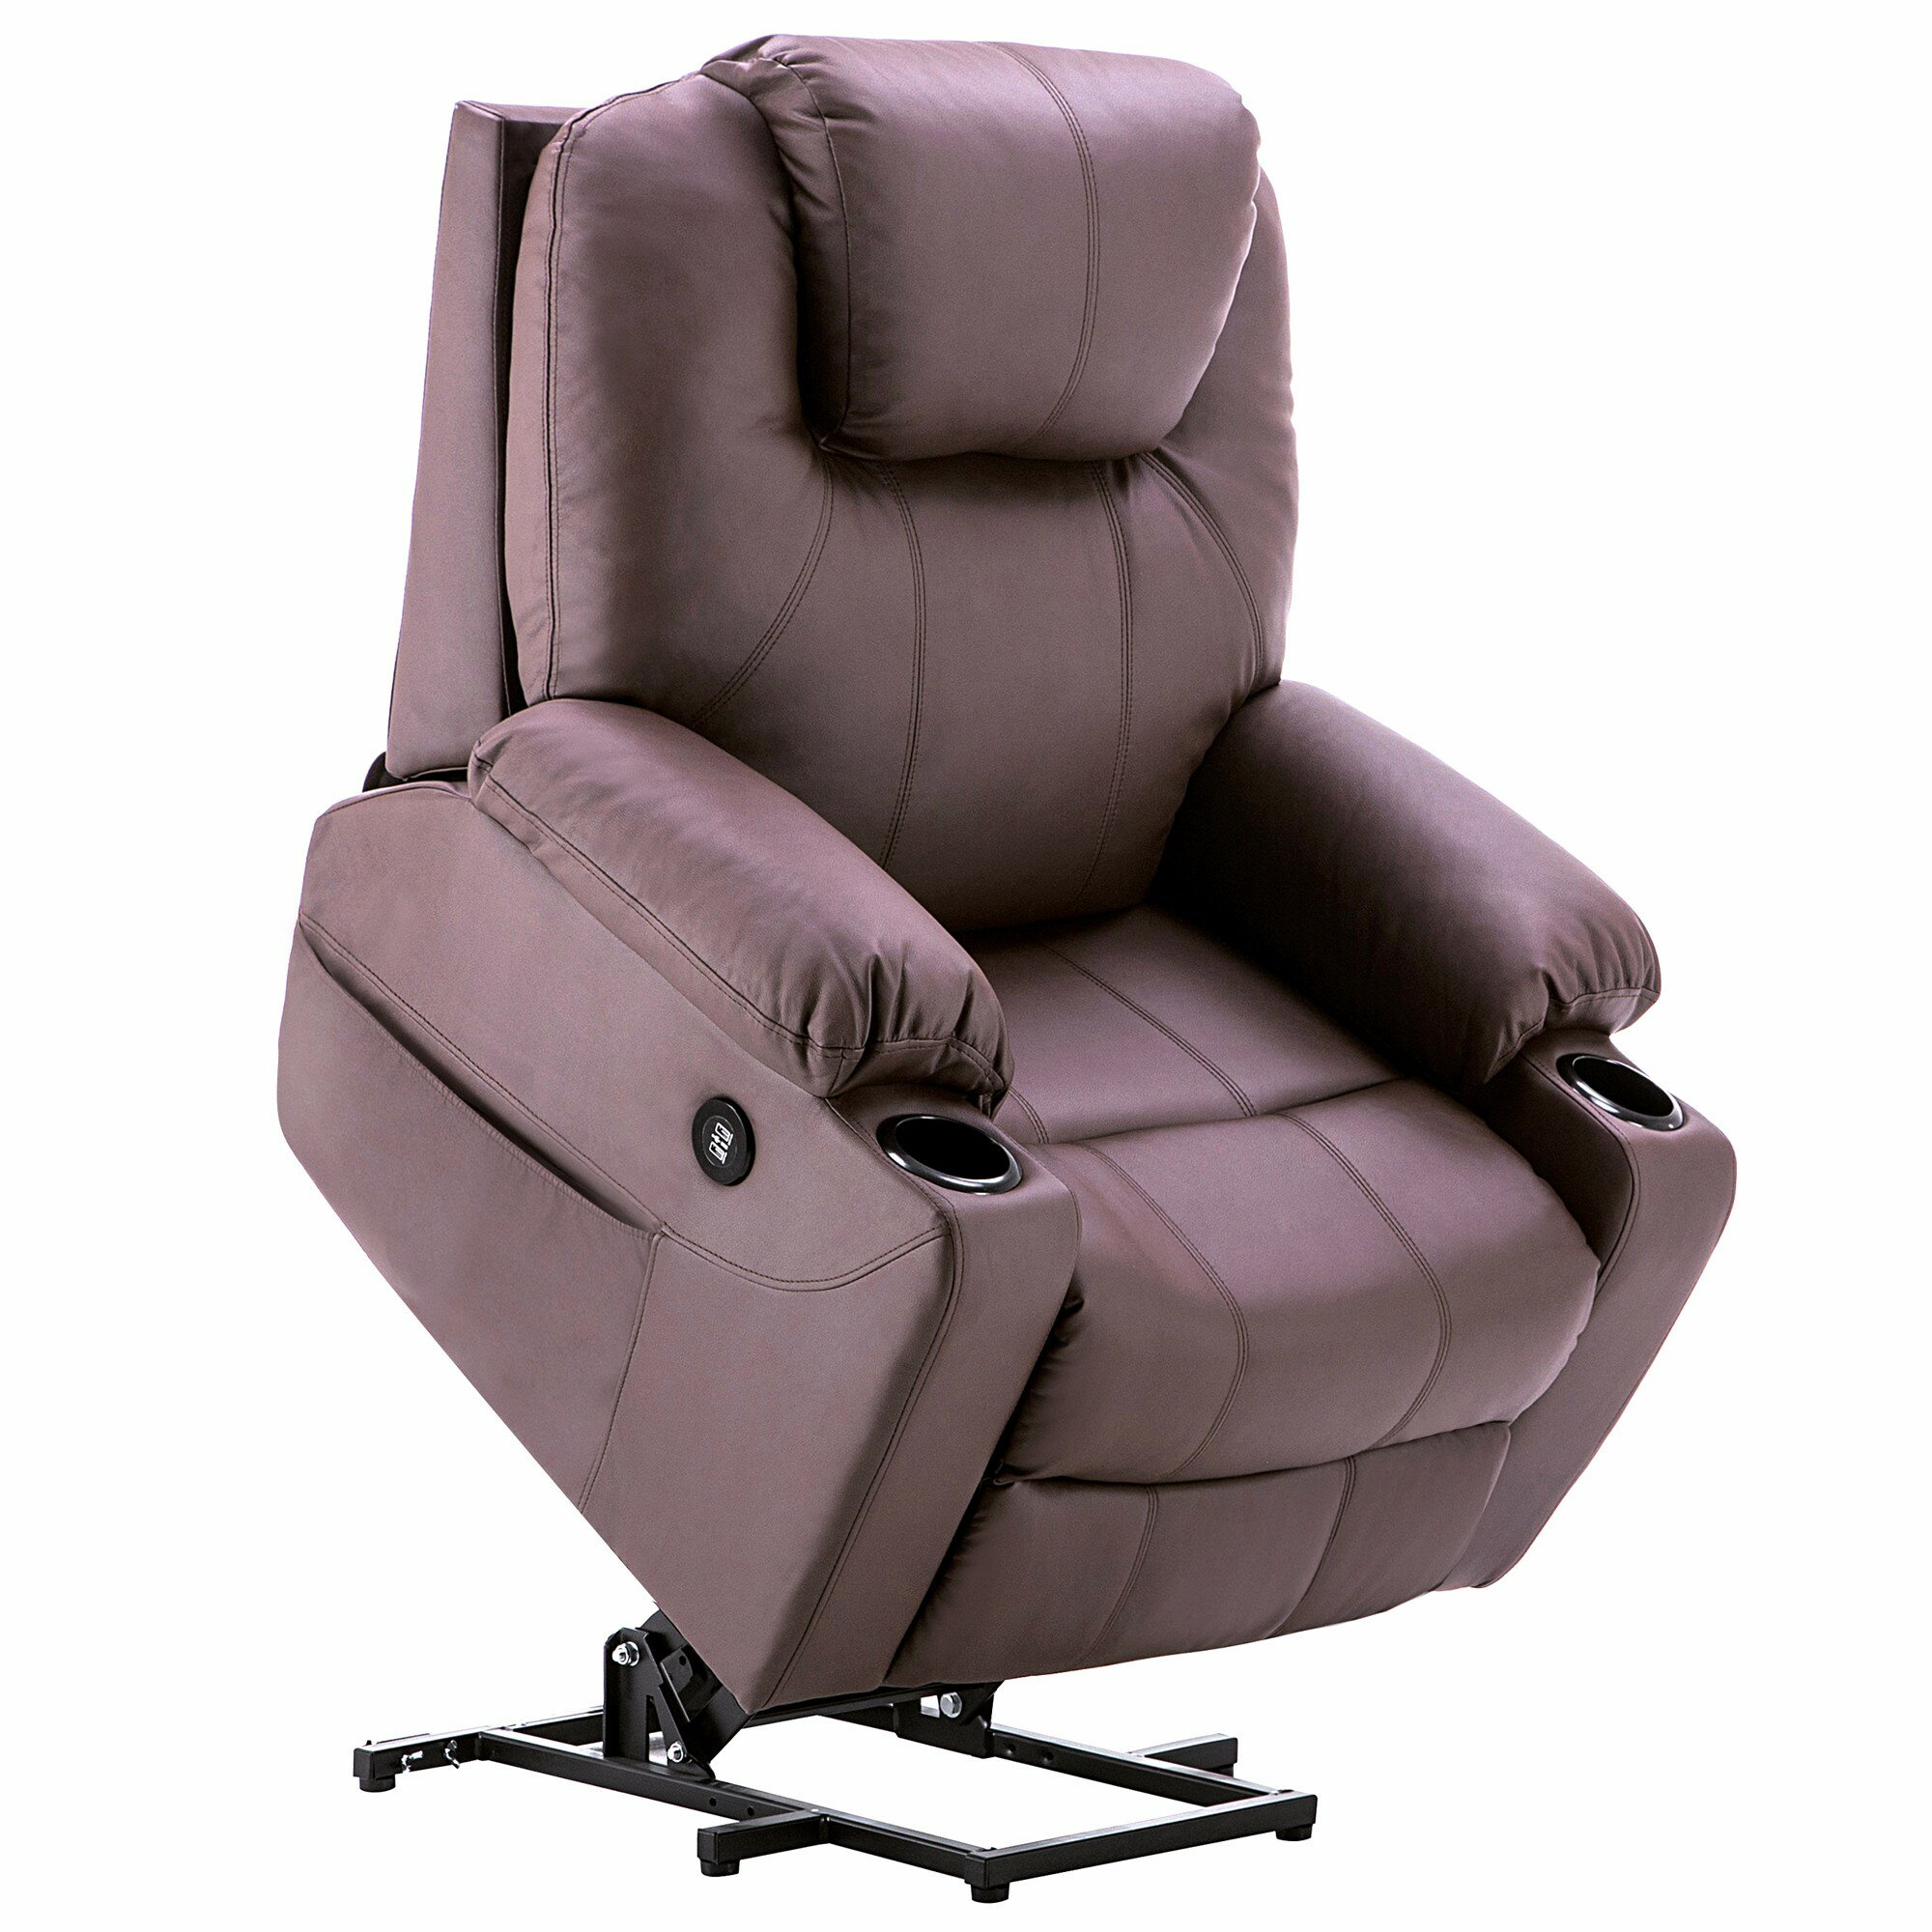 Fabulous Mcombo Electric Power Lift Recliner Massage Sofa Heated Chair Lounge W Remote Control Usb Charging Ports 7040 Gamerscity Chair Design For Home Gamerscityorg